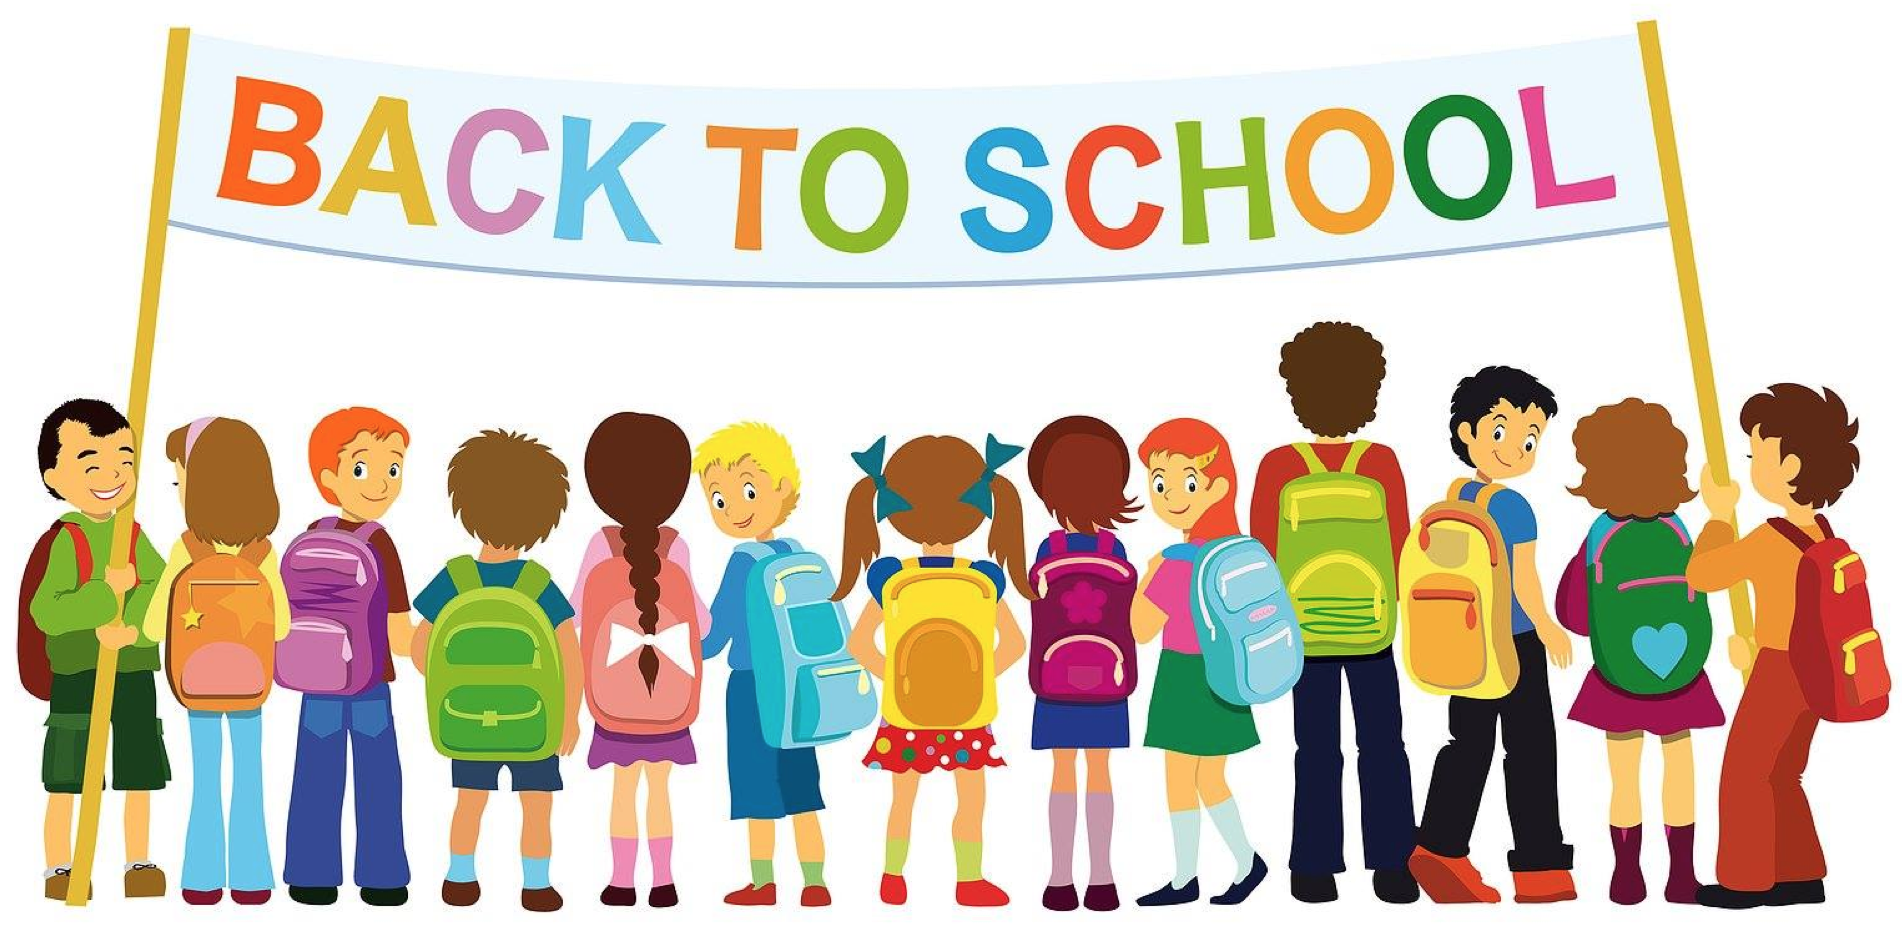 Back To School Png image #23376